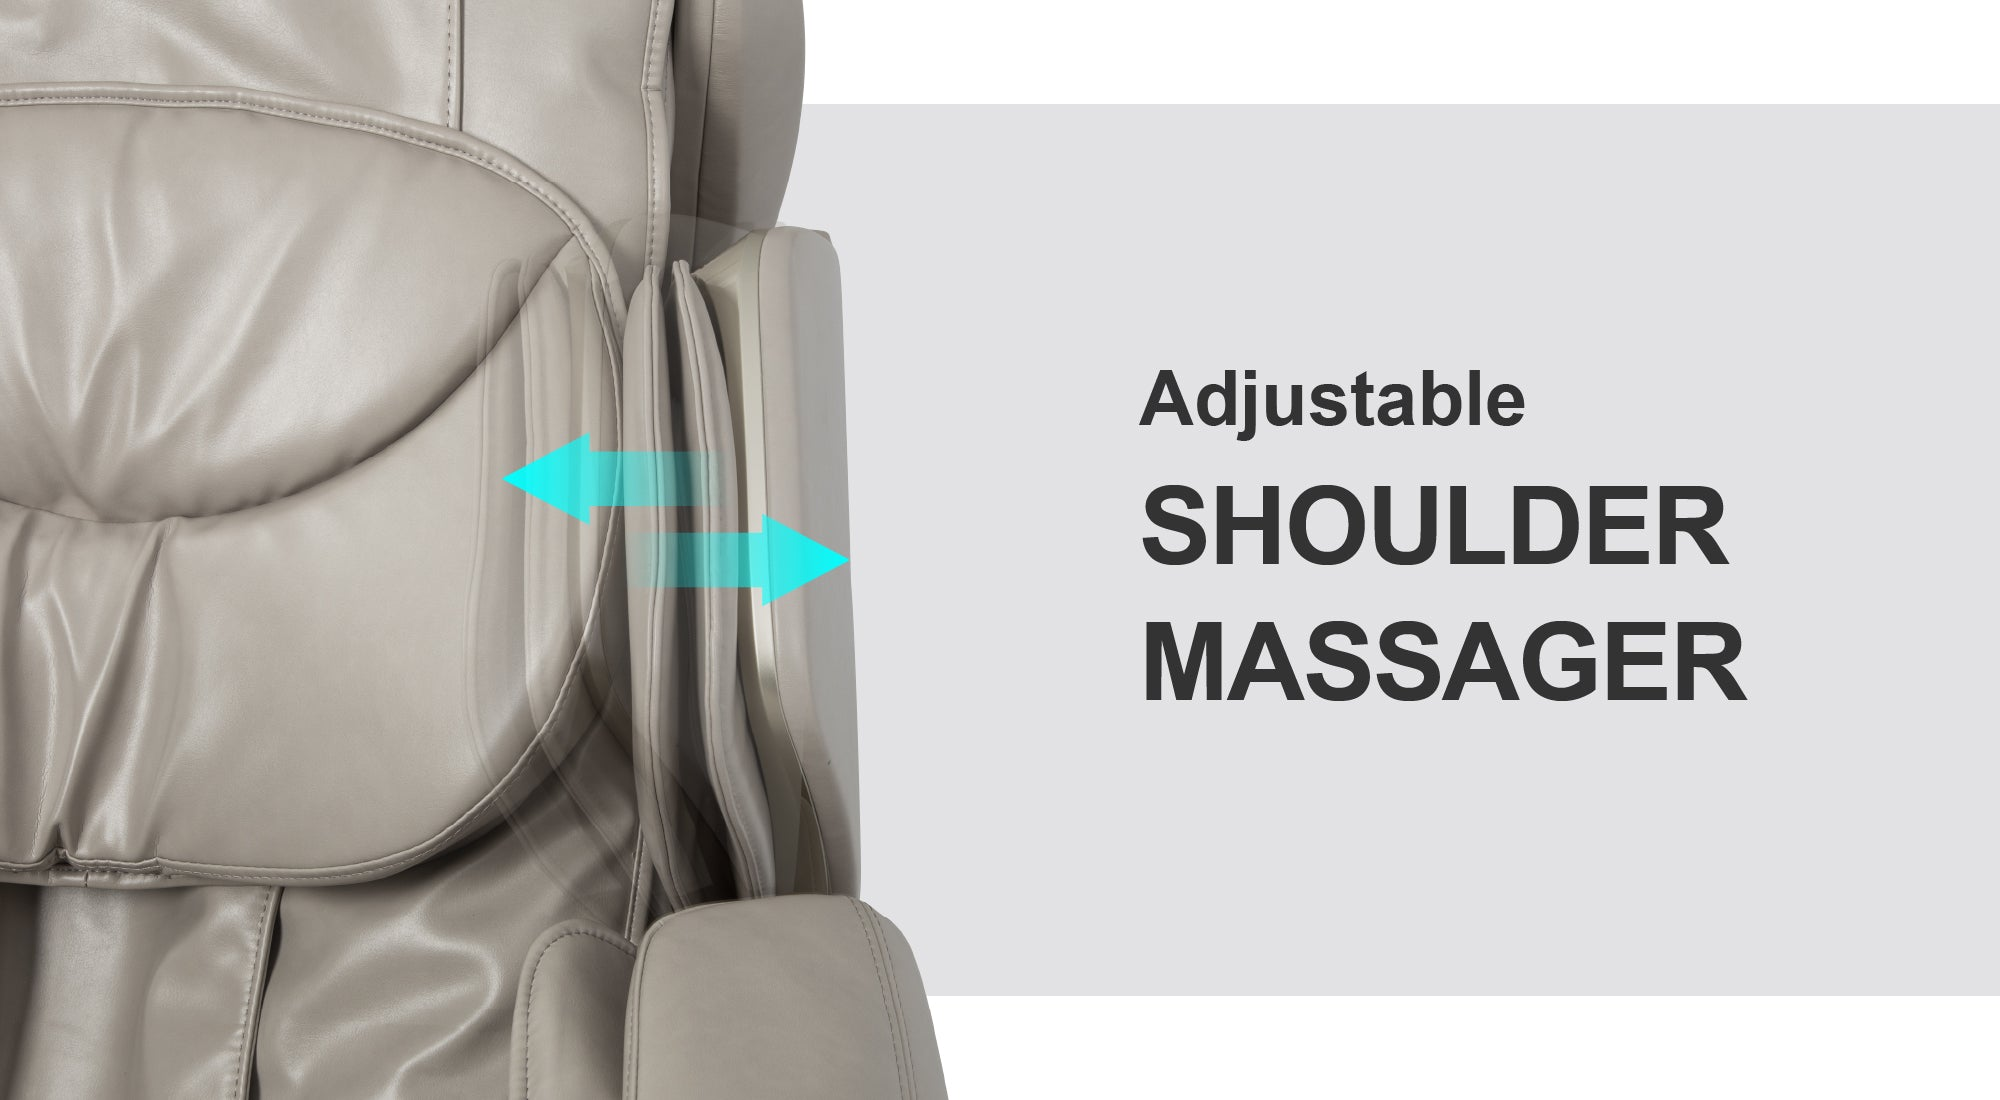 Adjustable Shoulder Massager